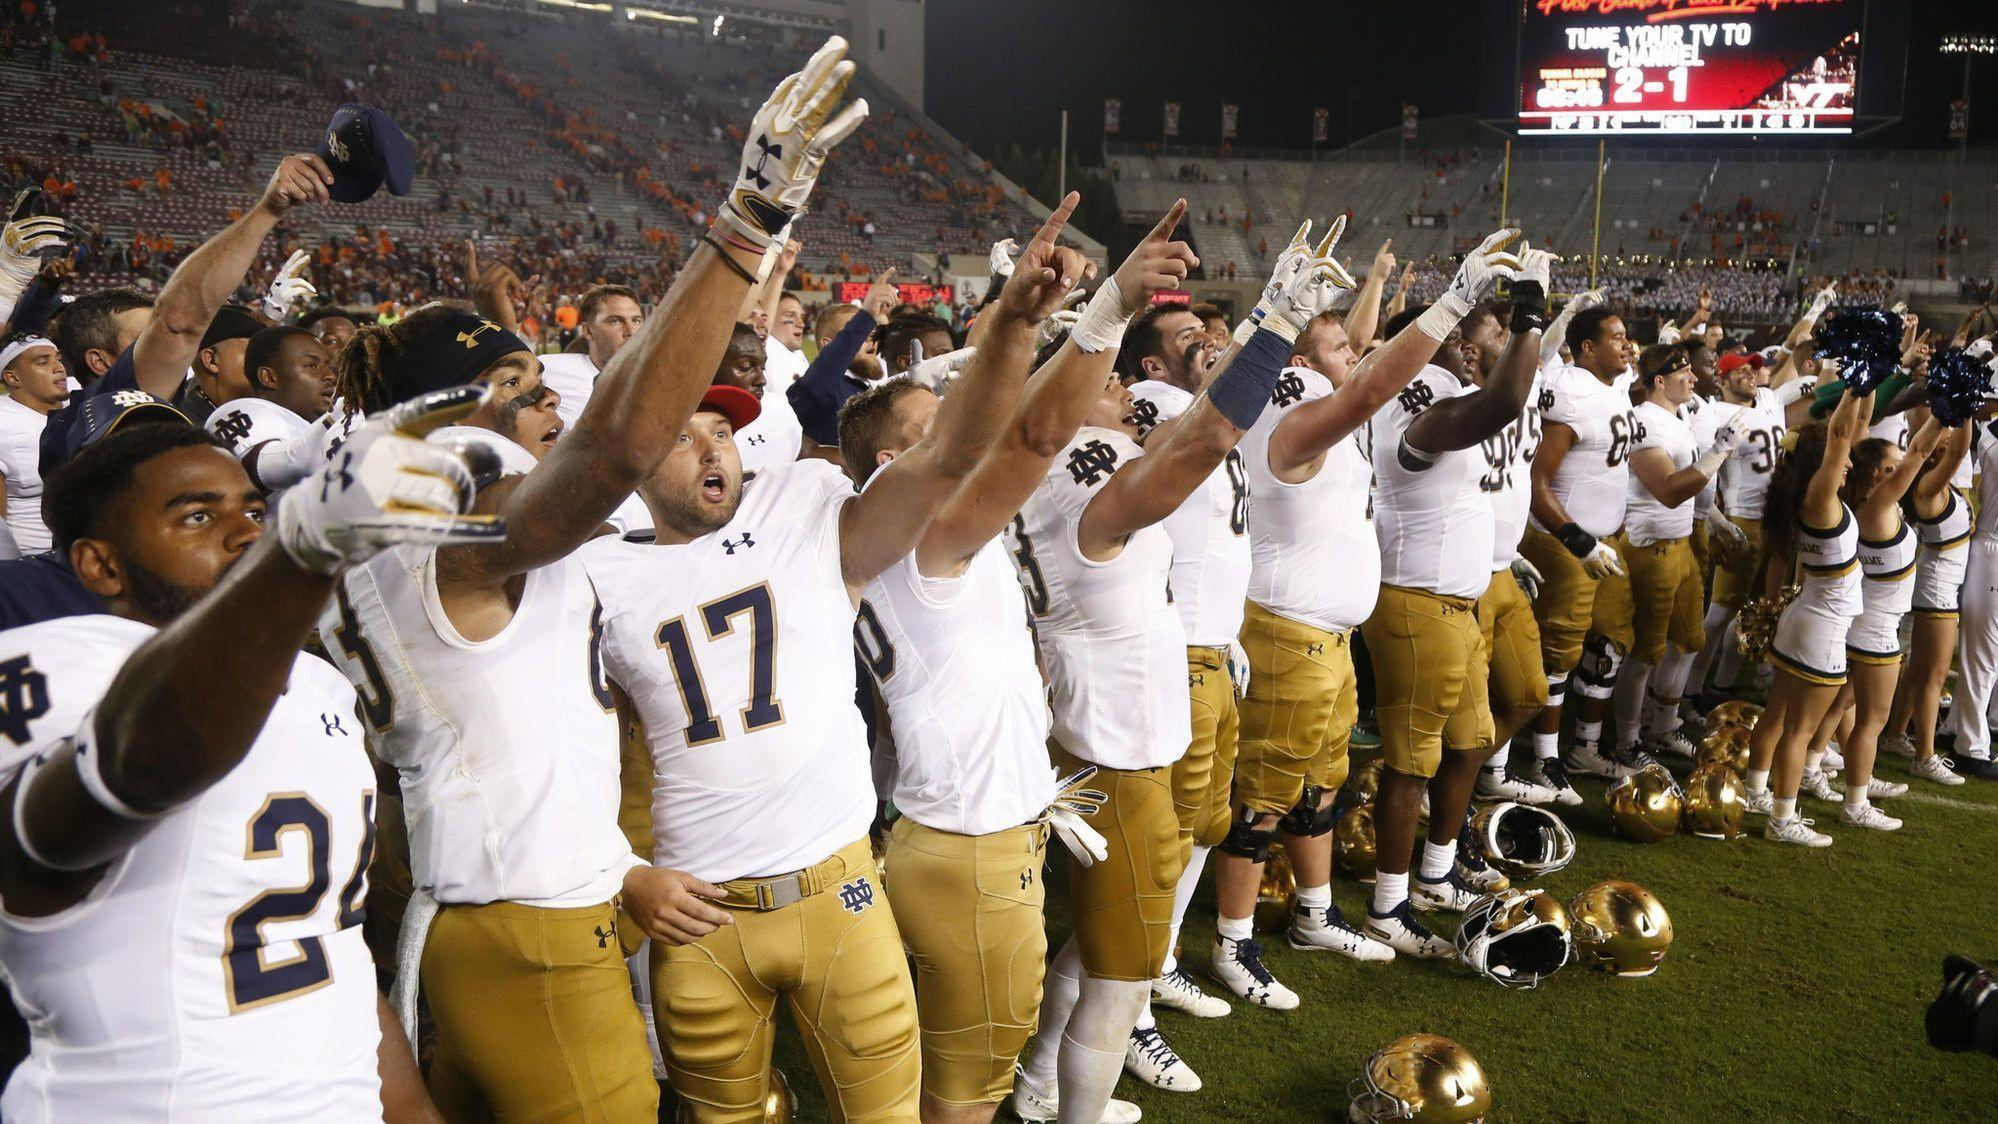 Notre Dame moves into top 5 in AP s latest rankings - Chicago Tribune 5accc6279